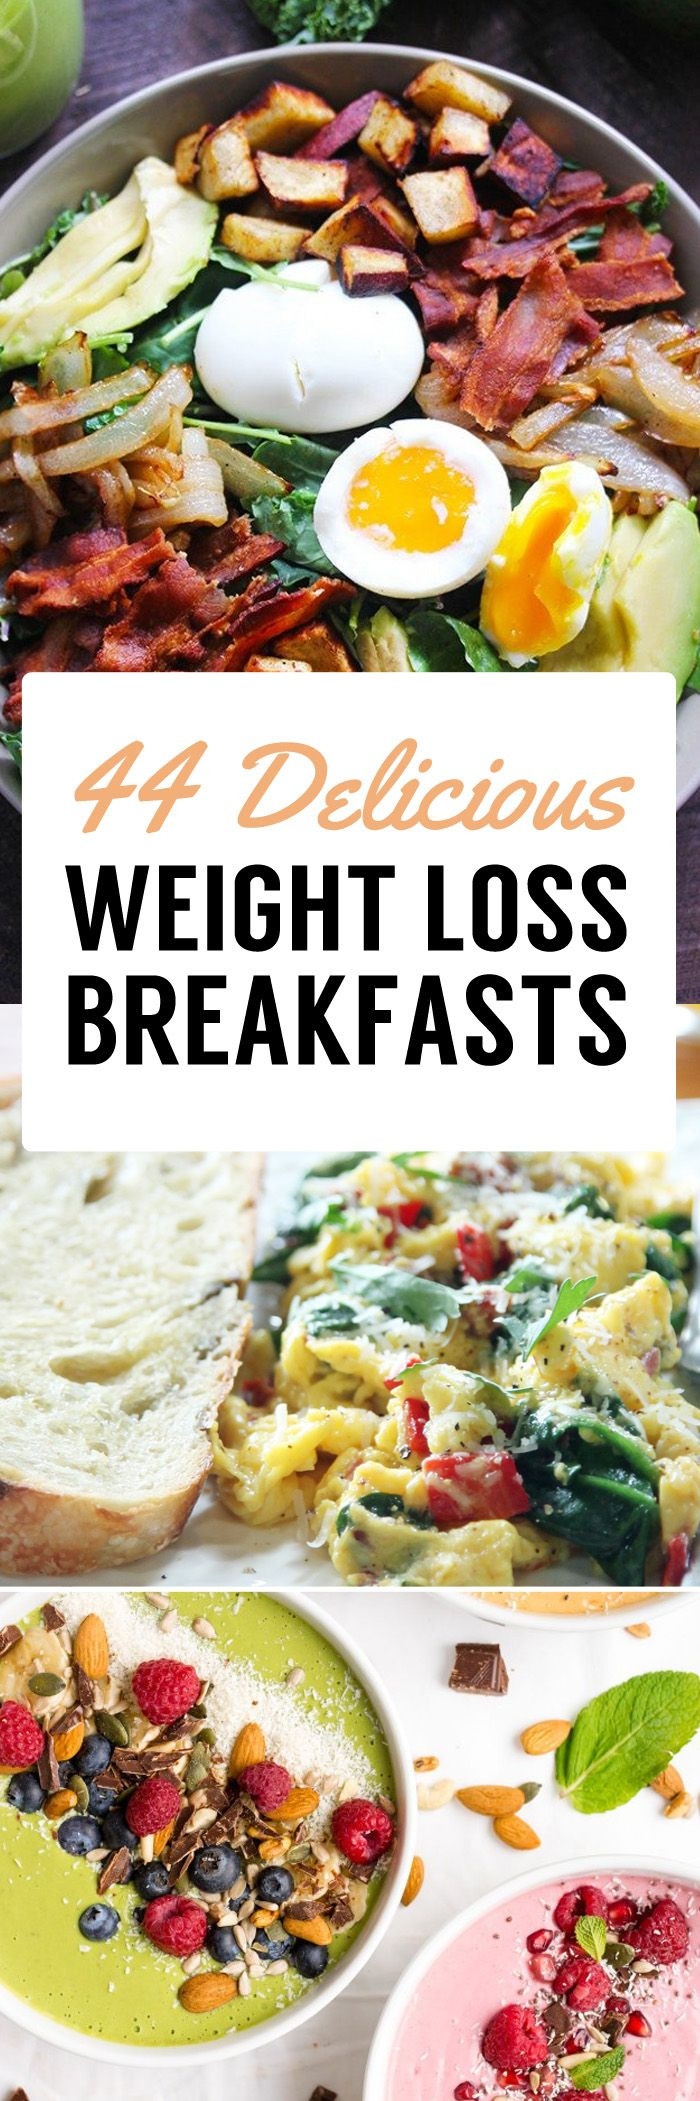 Healthy Fats For Breakfast  44 Weight Loss Breakfast Recipes To Jumpstart Your Fat